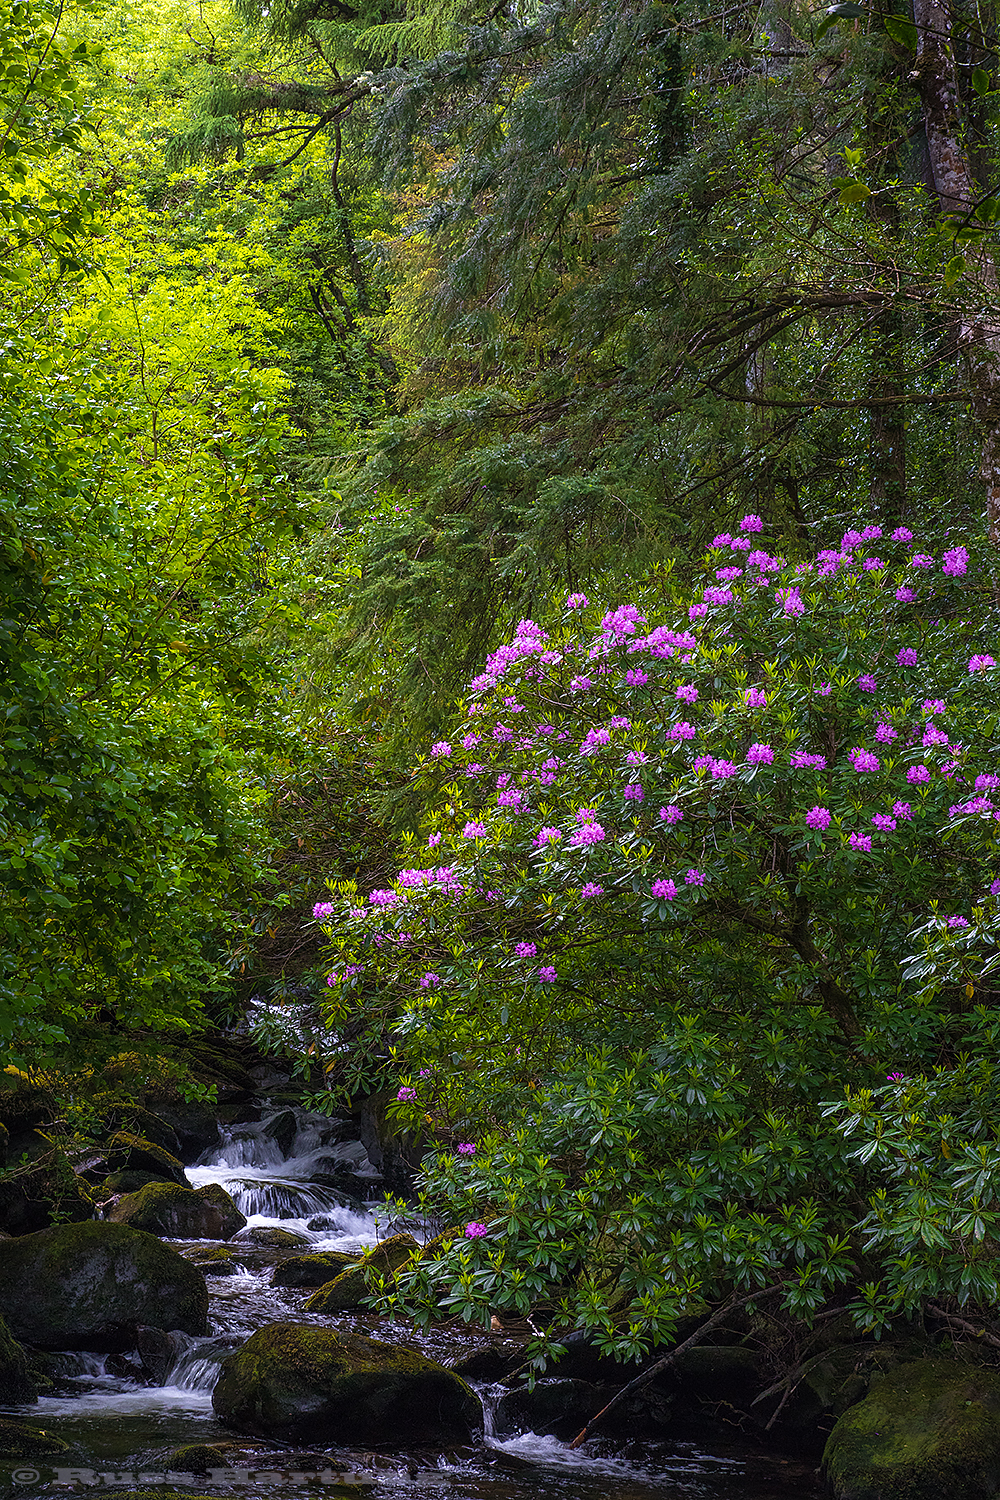 Giant rhododendron bushes in Killarney National Park, Ireland.